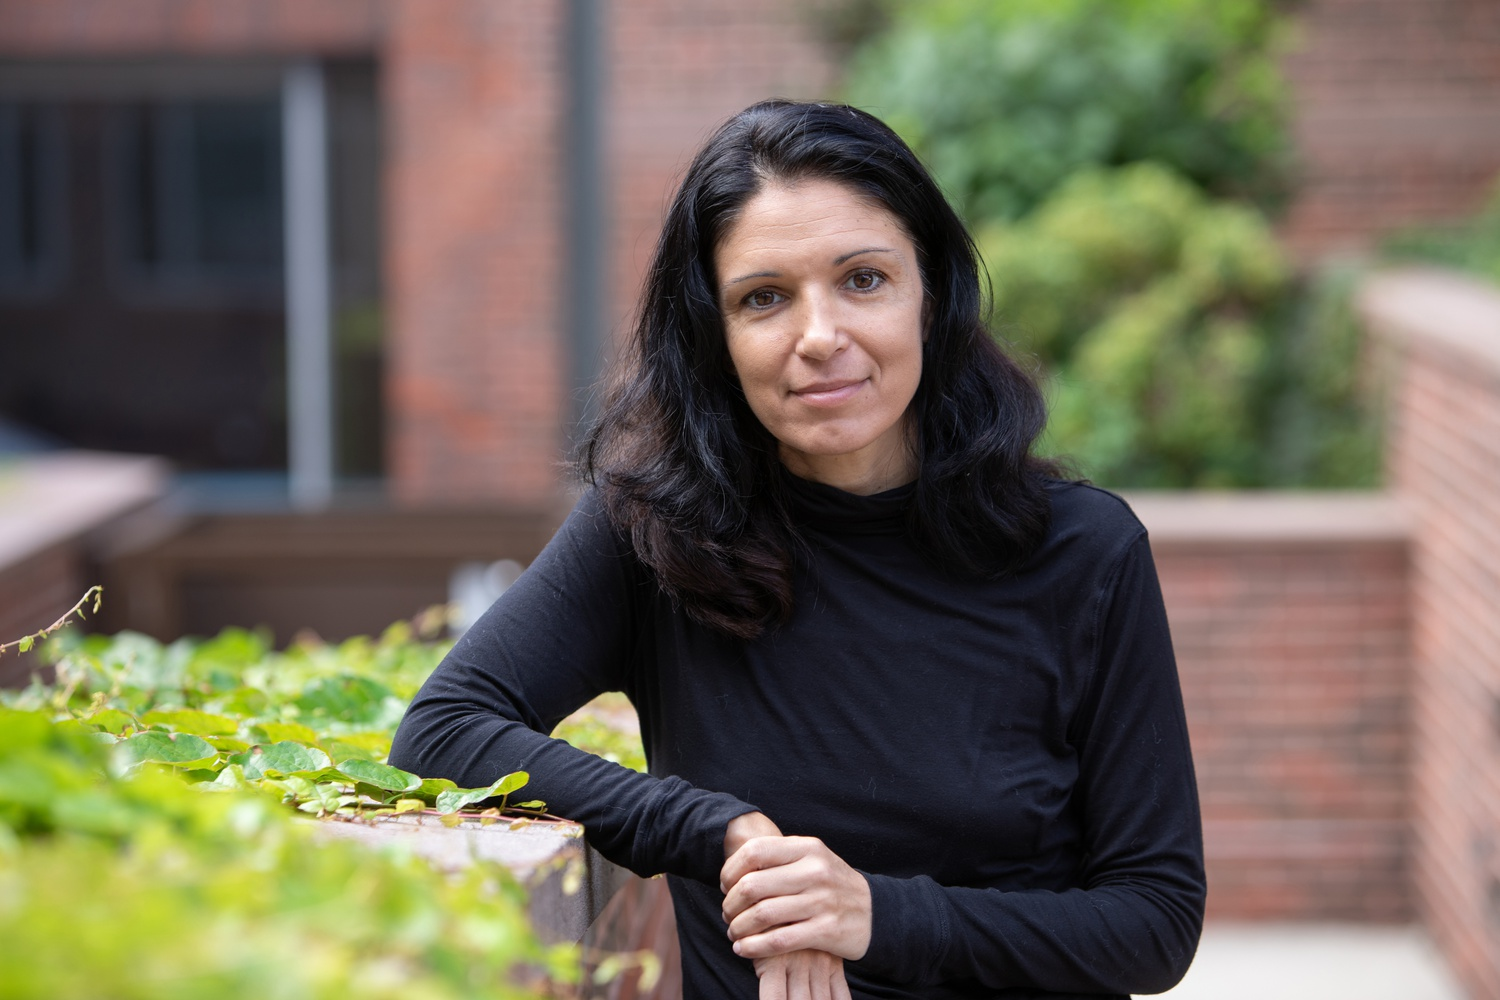 Harvard Kennedy School professor Marcella M. Alsan '99 was selected as a 2021 MacArthur Fellow on Tuesday for her work in health disparities at the intersection of medicine and economics.